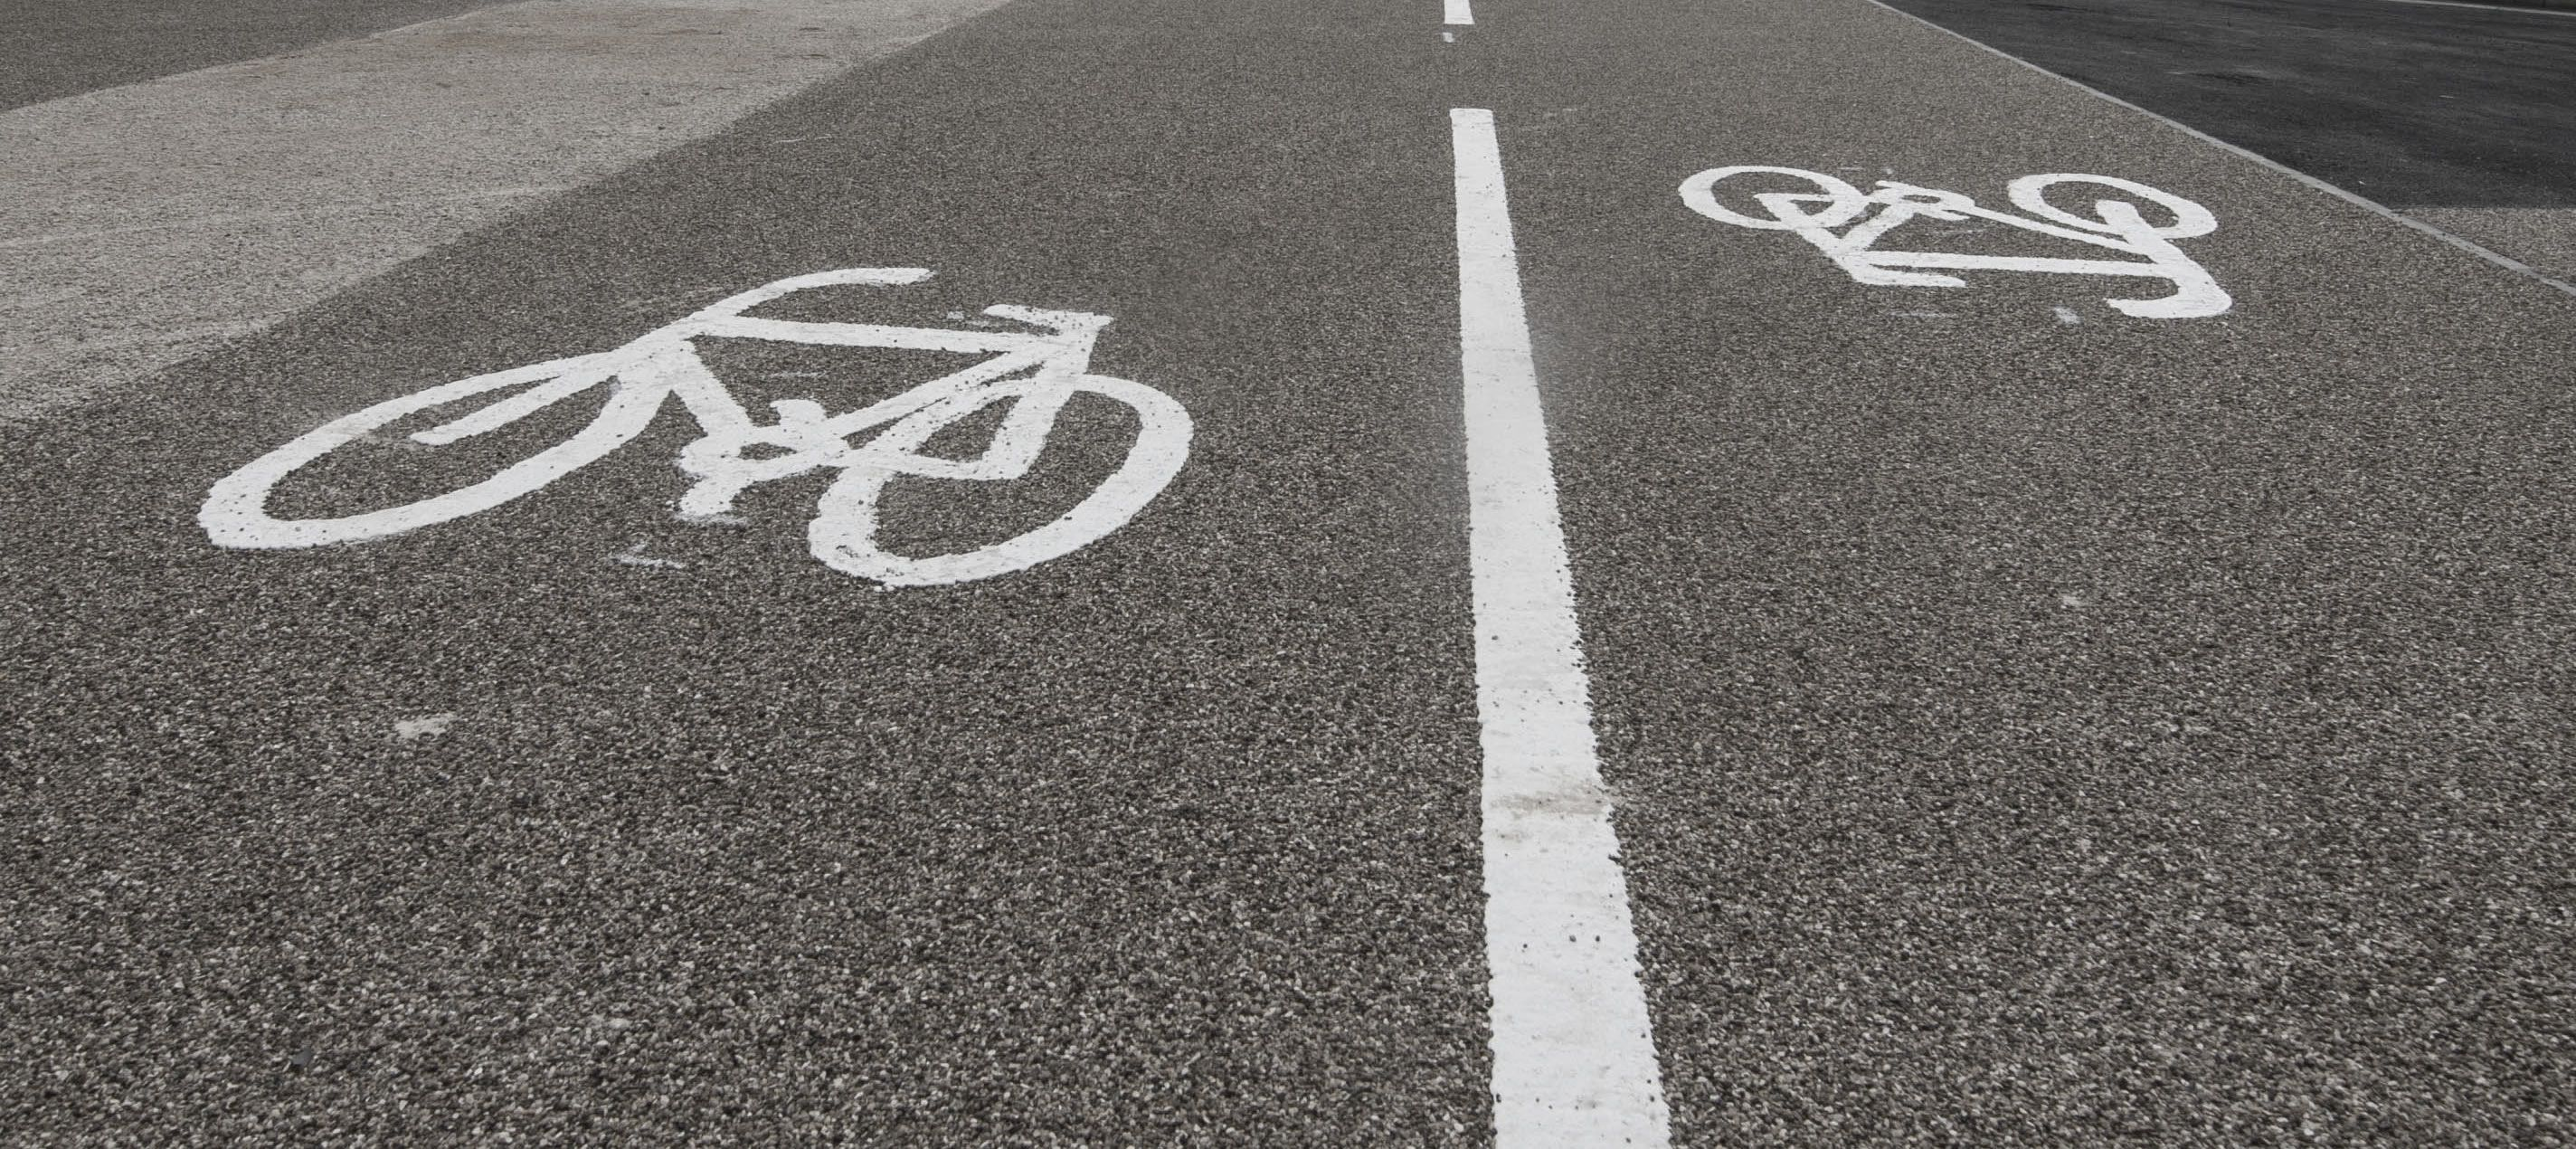 KAPACC promoting better and safe cycling routes